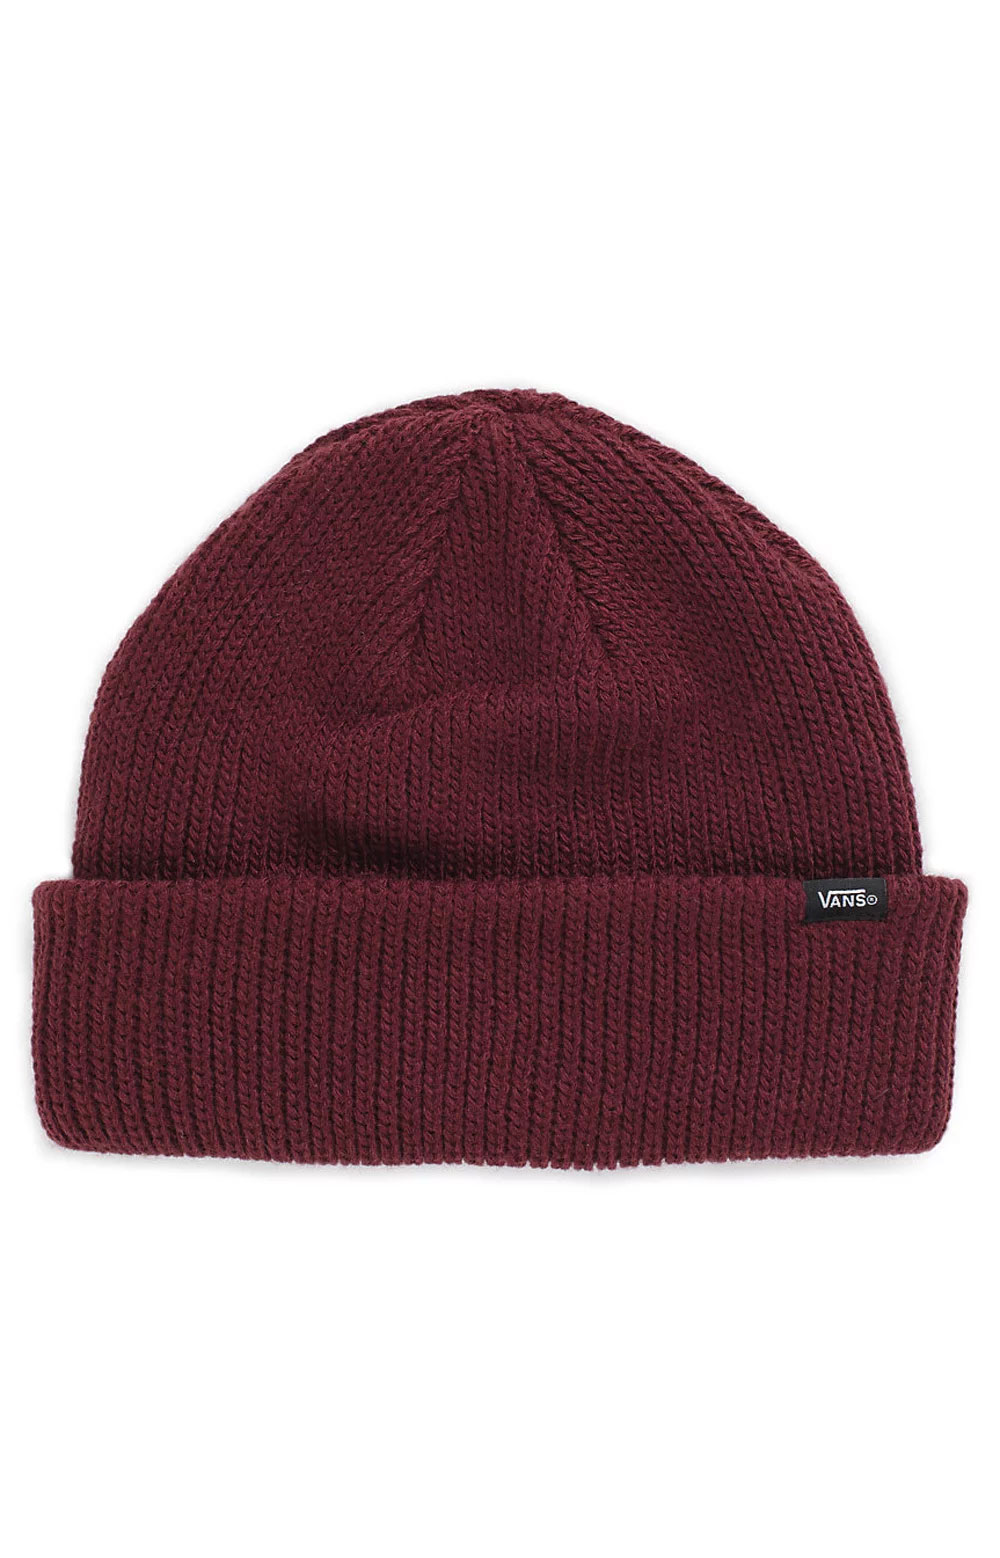 Core Basics Beanie - Port Royale